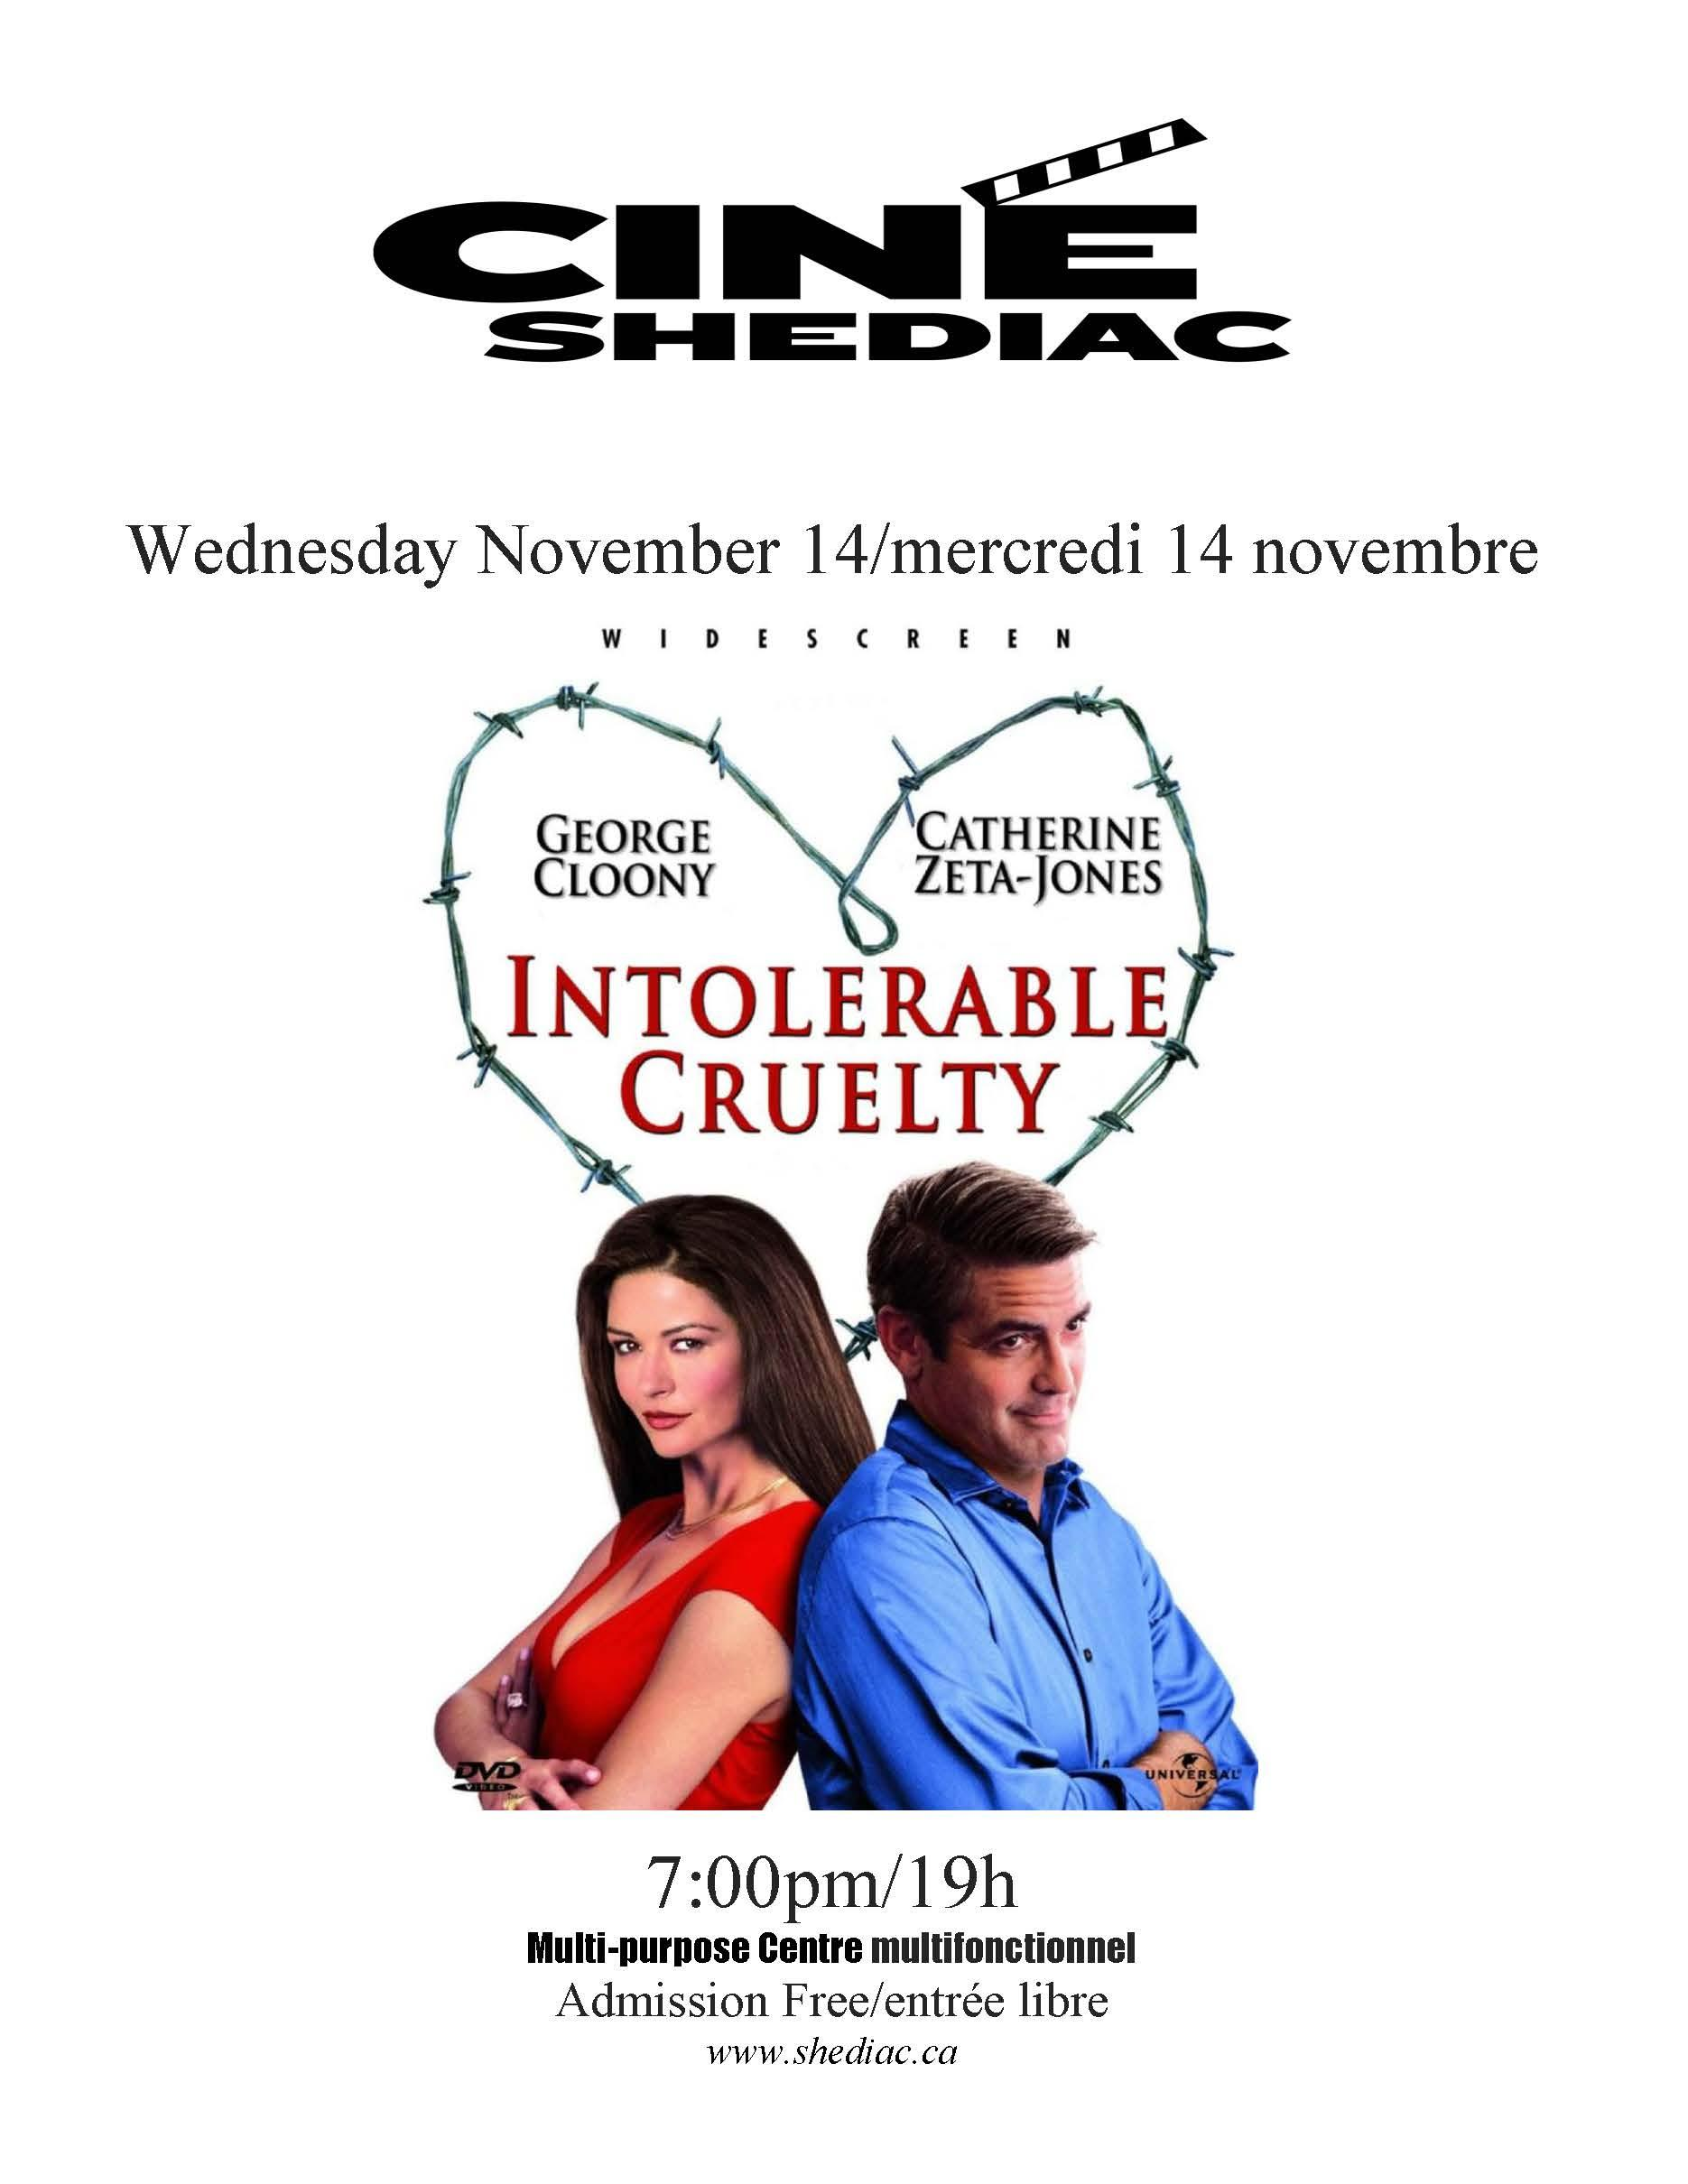 Intolerable Cruelty 14 novembre